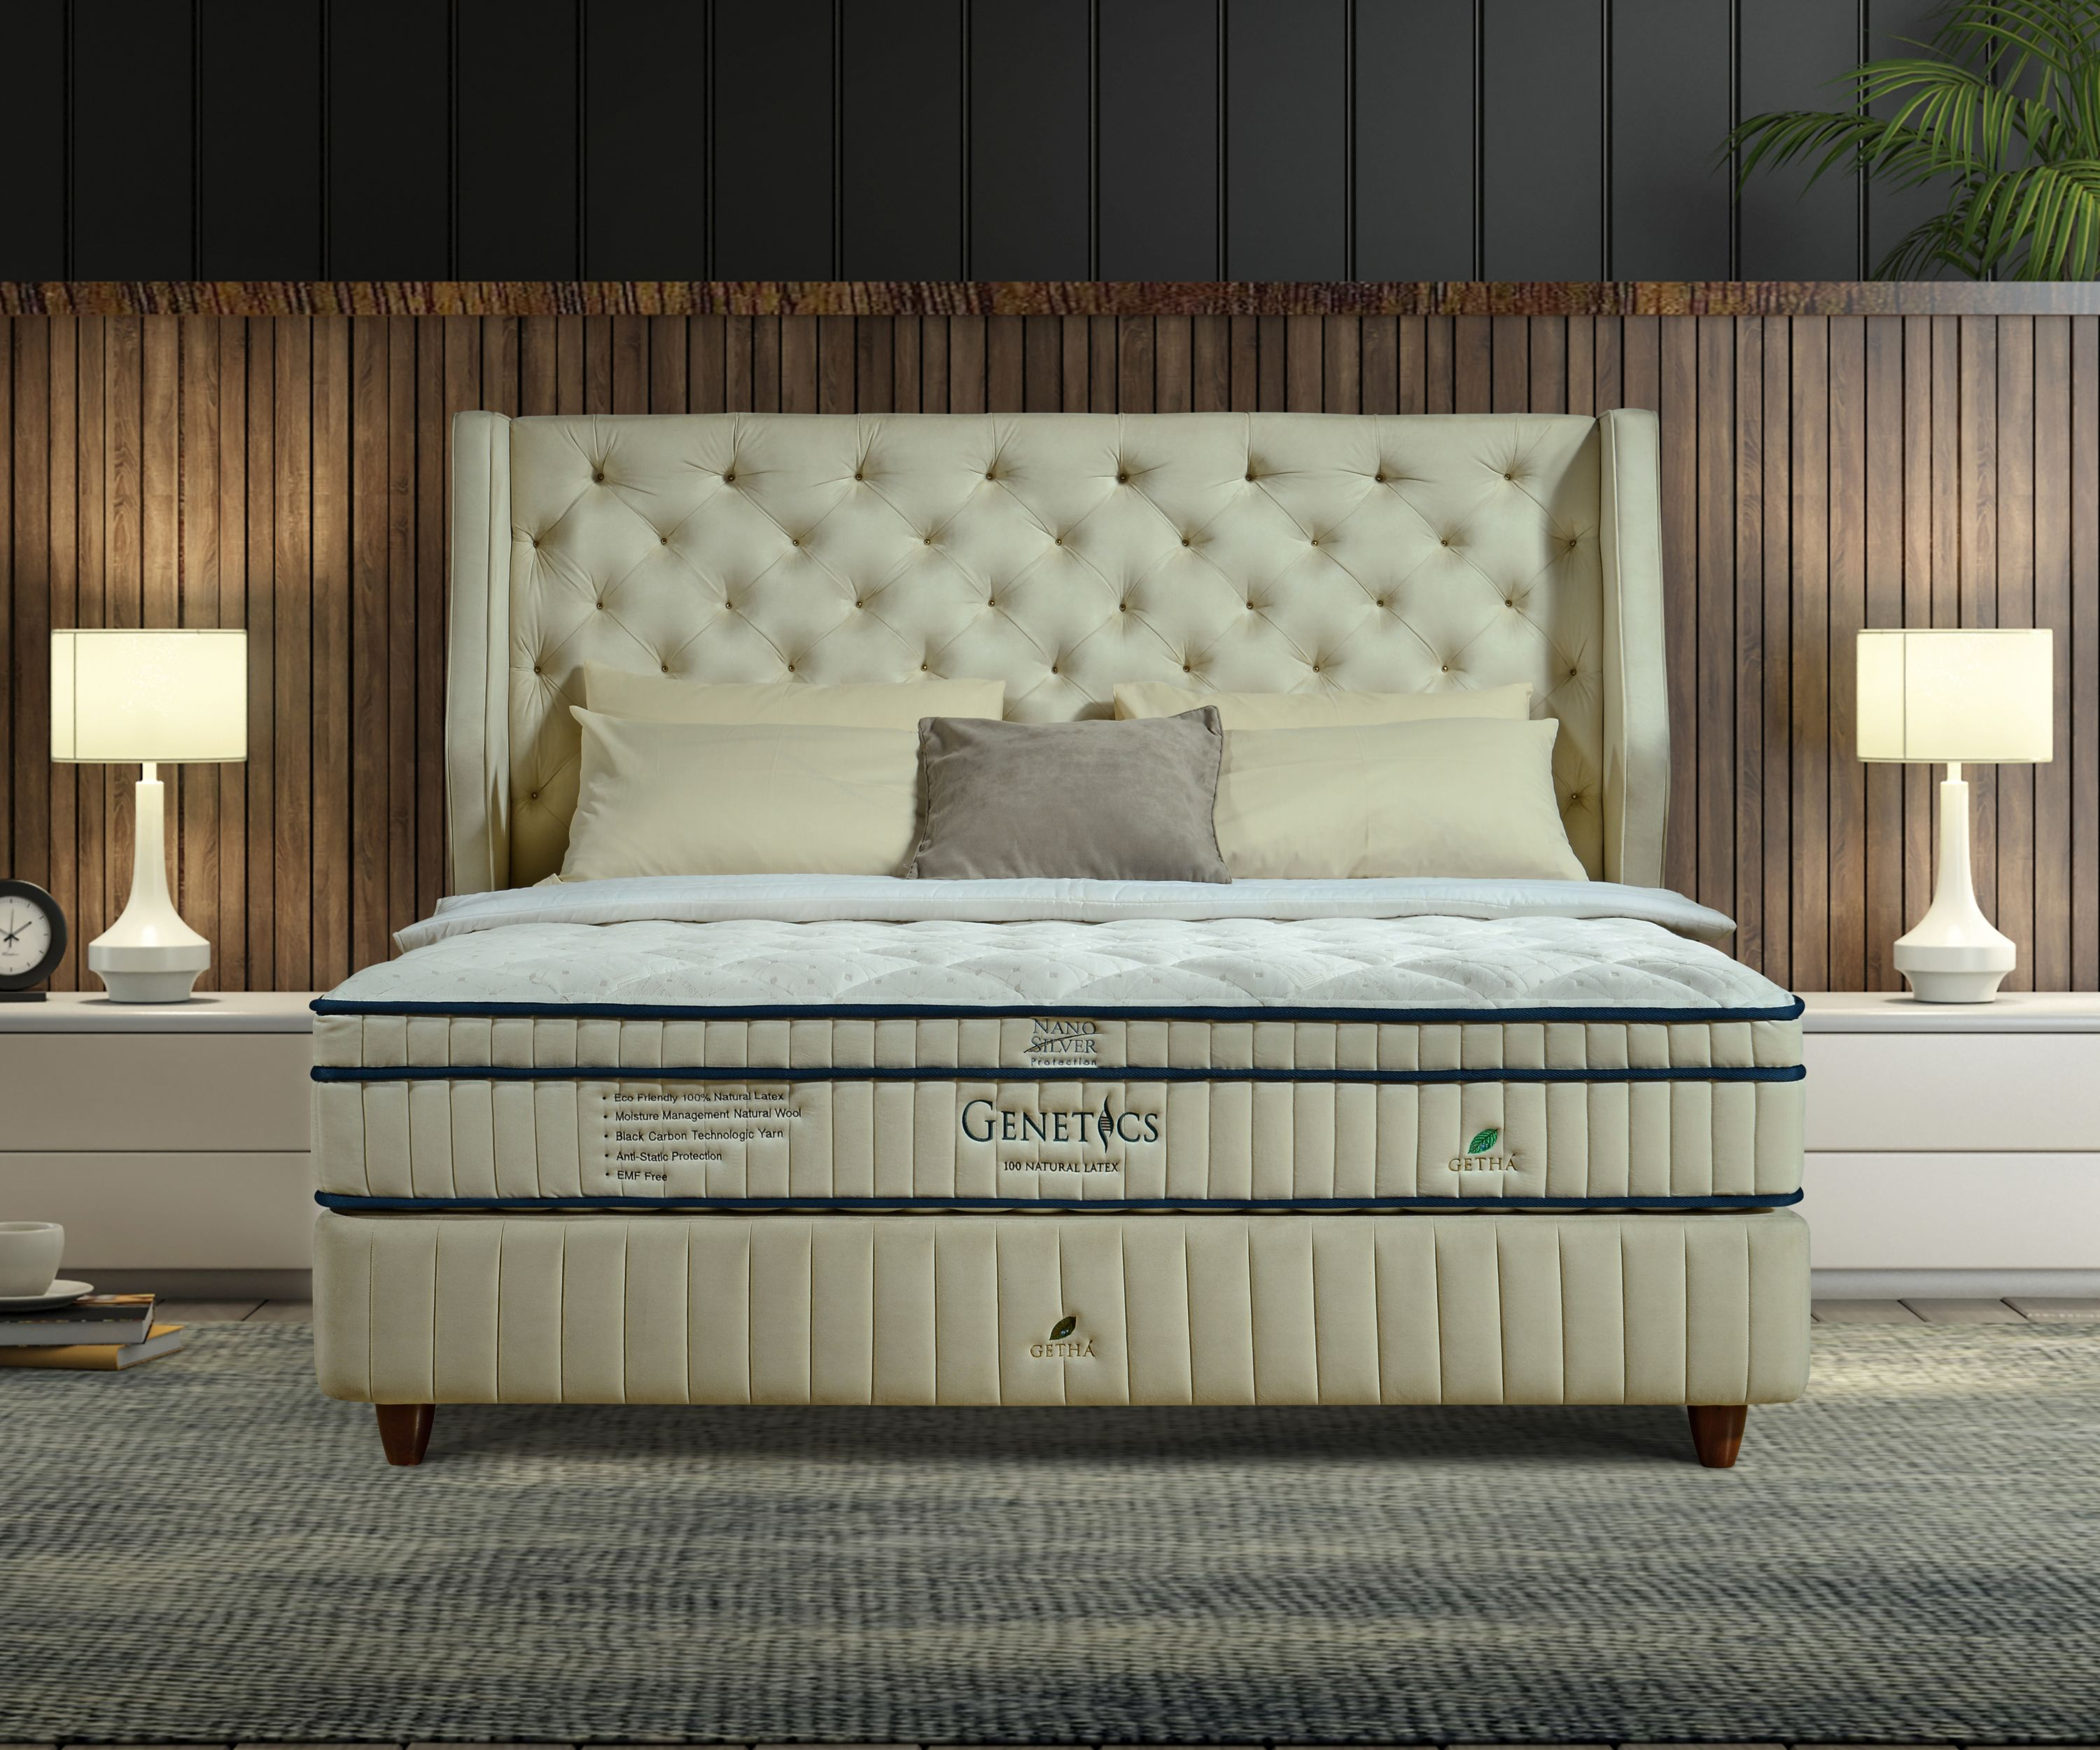 Bed with a Genetics Natural Latex Mattress